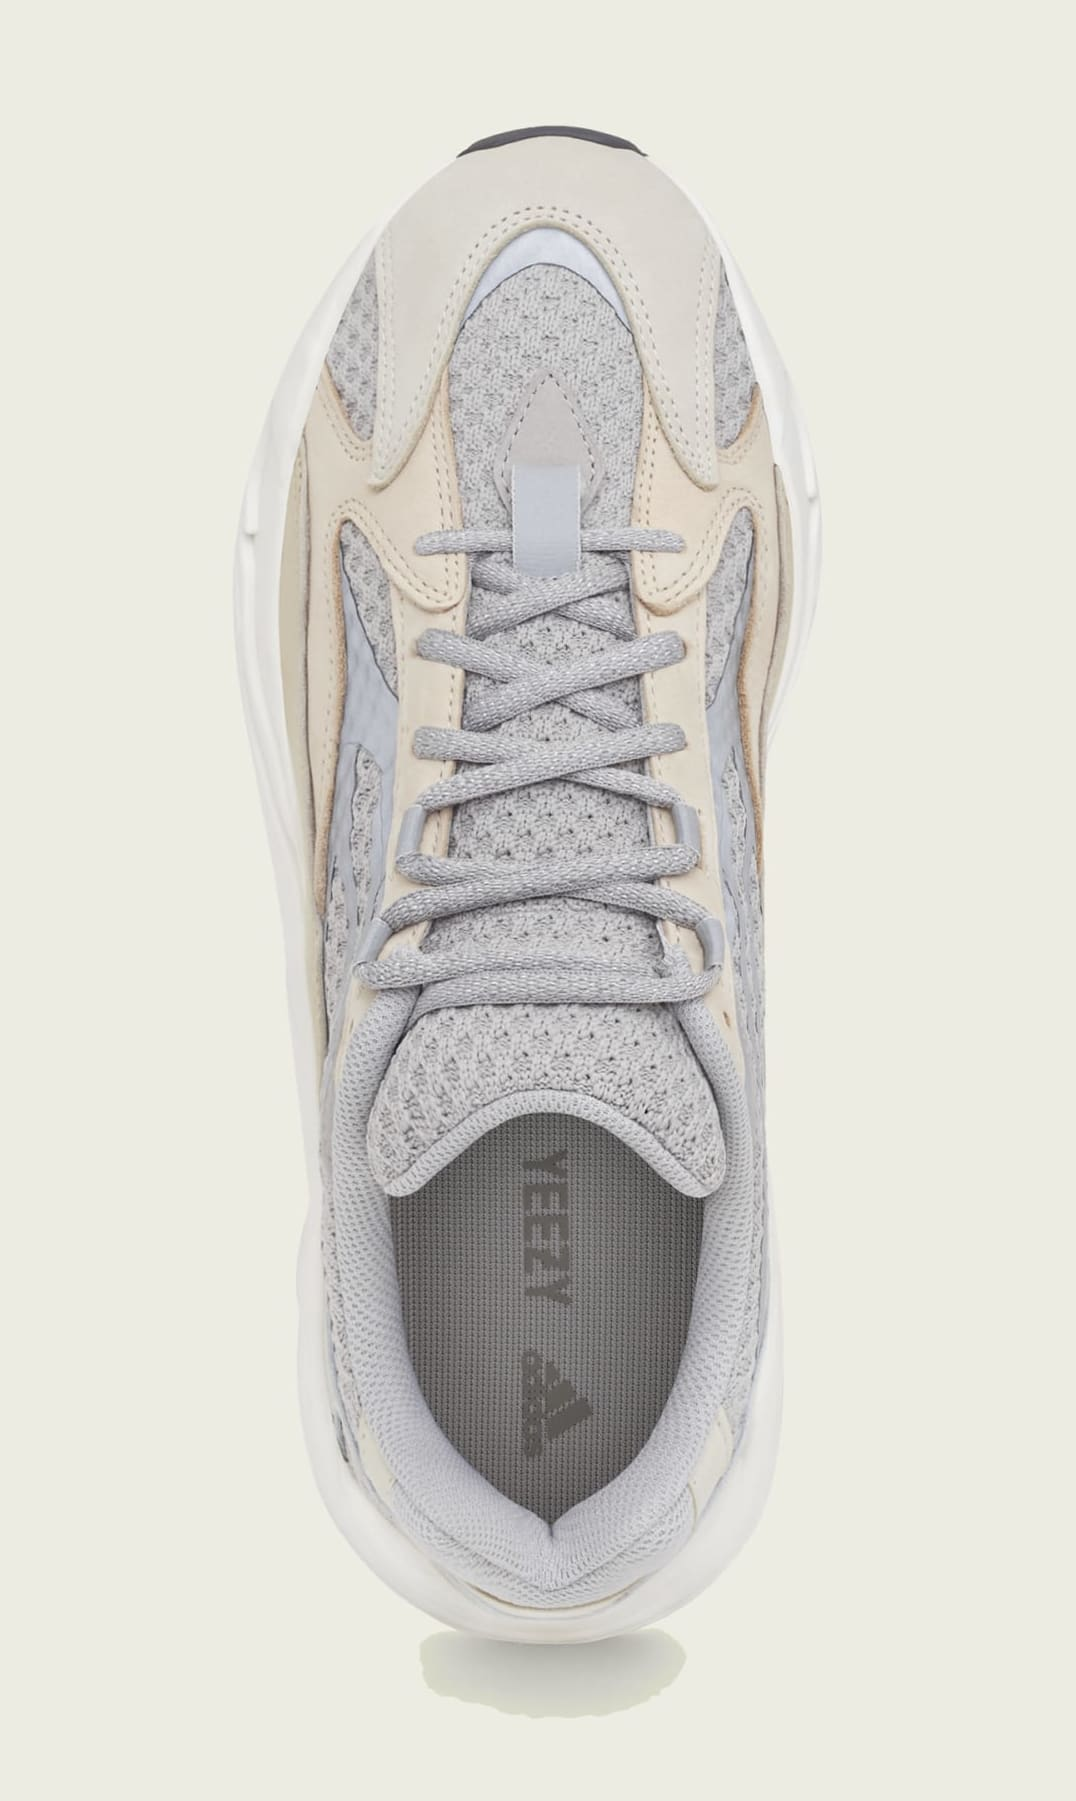 Adidas Yeezy Boost 700 V2 'Cream' GY7924 Top